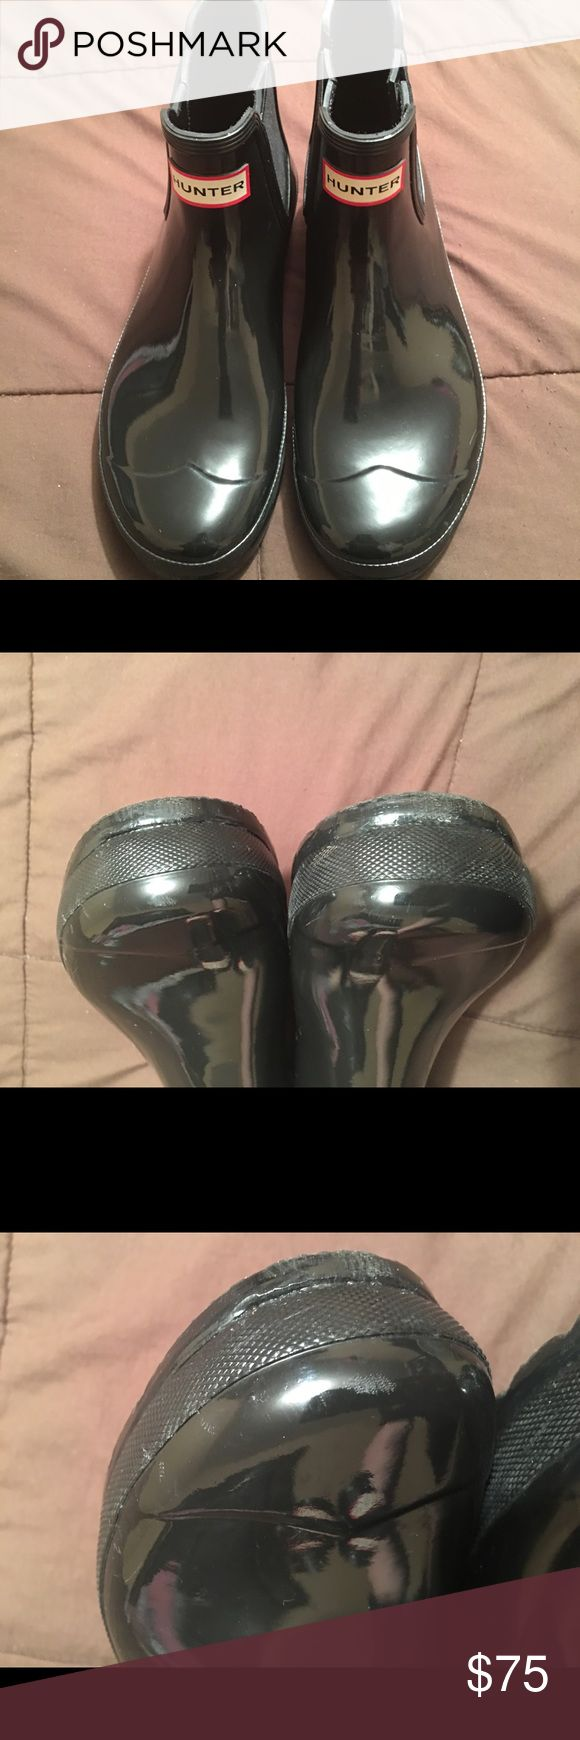 Hunter Chelsea boots 😀👗👝👠❤️️👚👜 Hunter boots in size 9. Has some marks in front. Didn't even notice until I cleaned for pictures. I offer a 20% discount for 2 or more items. It will automatically be applied at checkout. Hunter Boots Shoes Ankle Boots & Booties